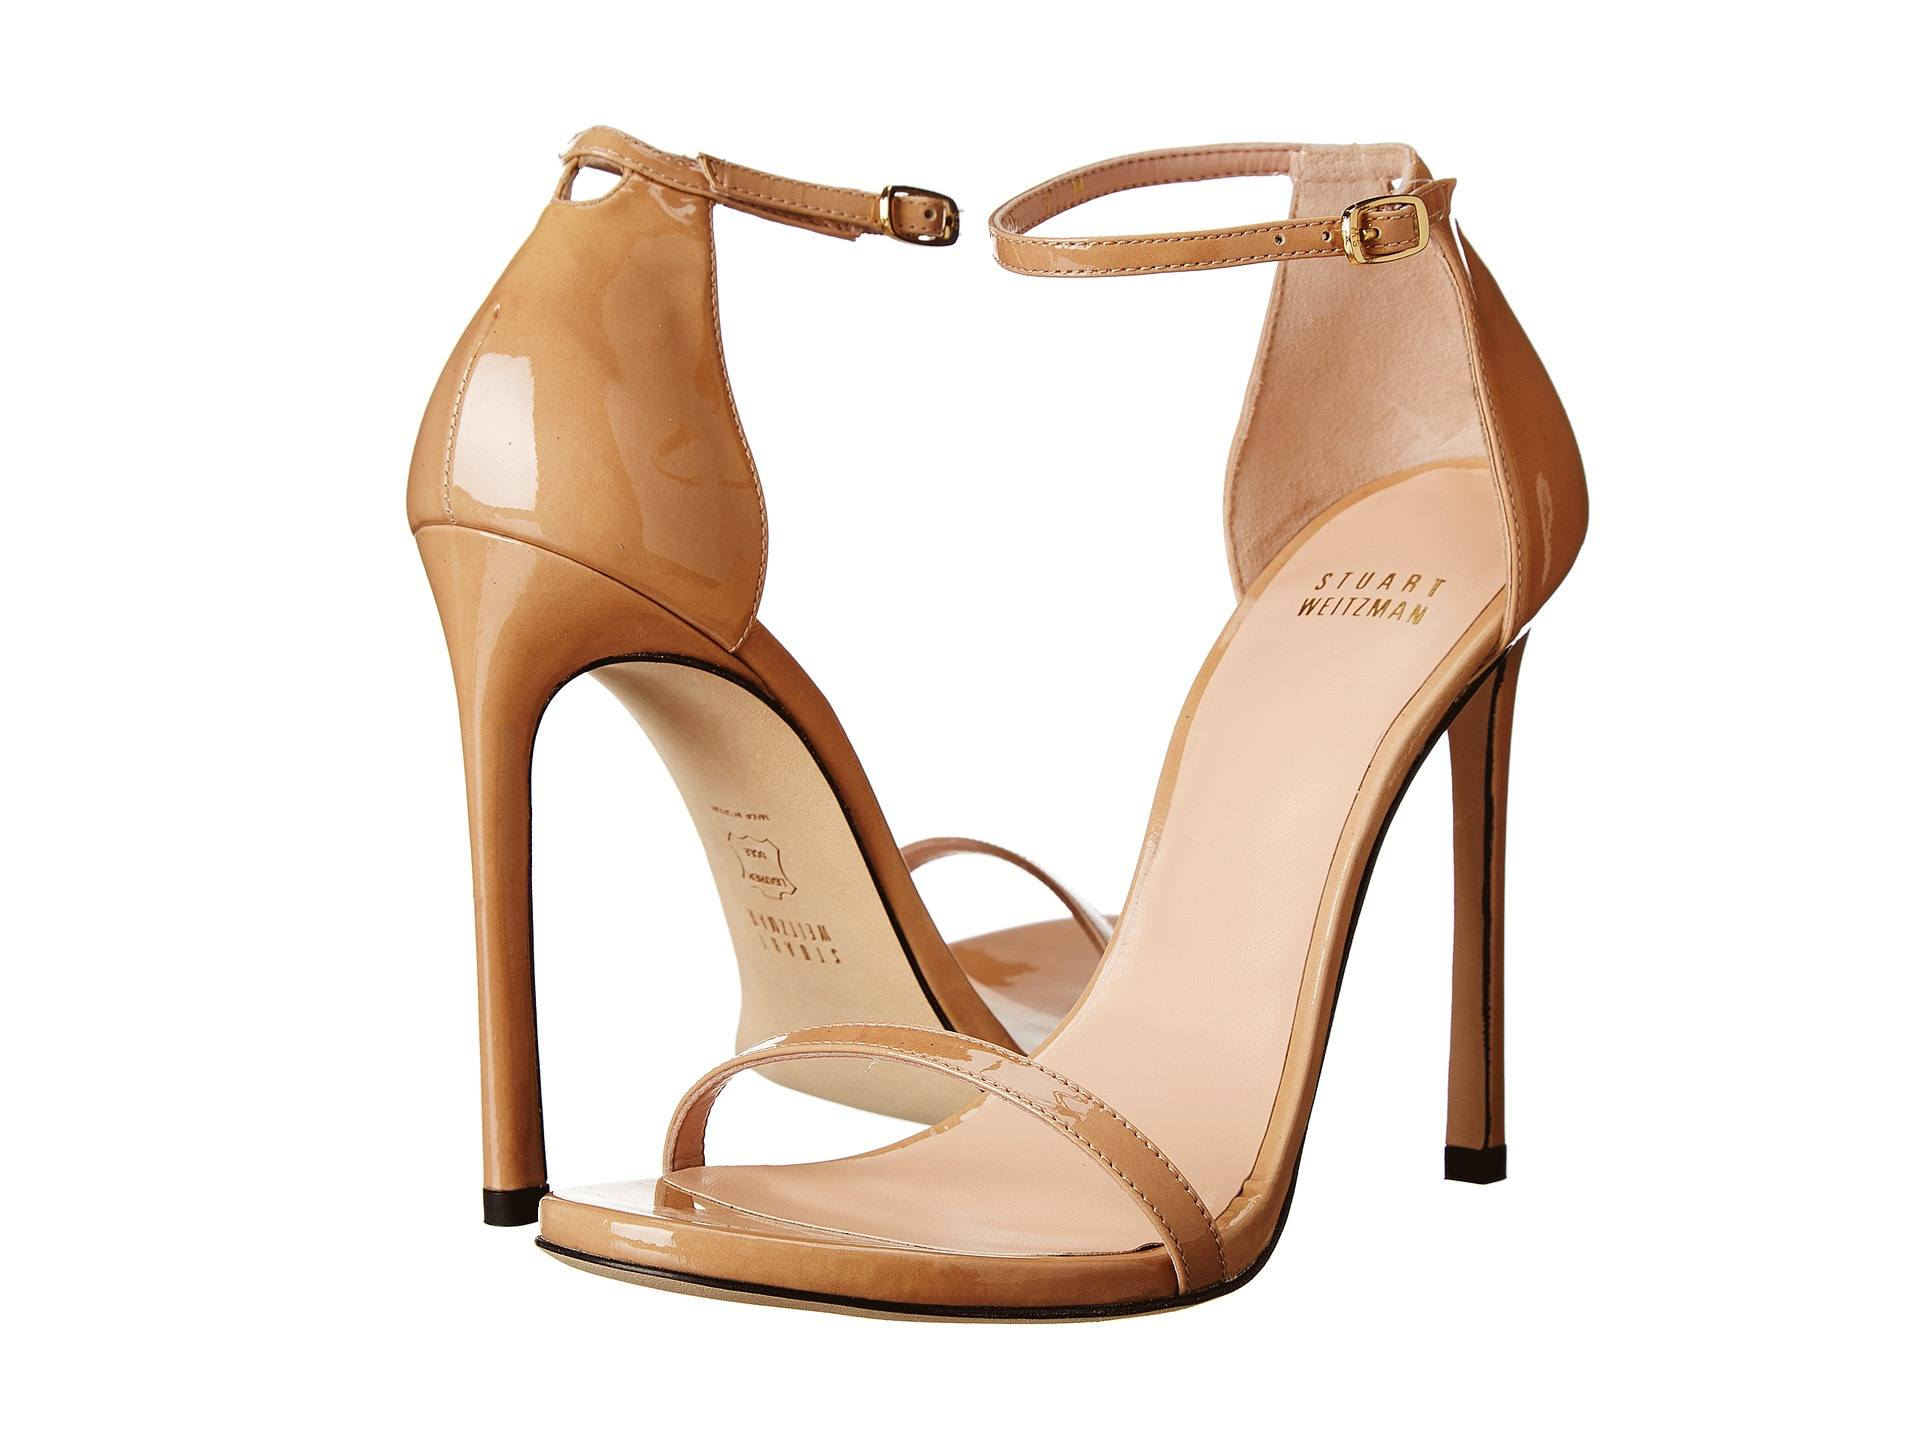 Stuart-Weitzman-Nudist-Glitter-Gold-IG Top Heel Brands - 10 Most Comfortable Heel Brands 2017